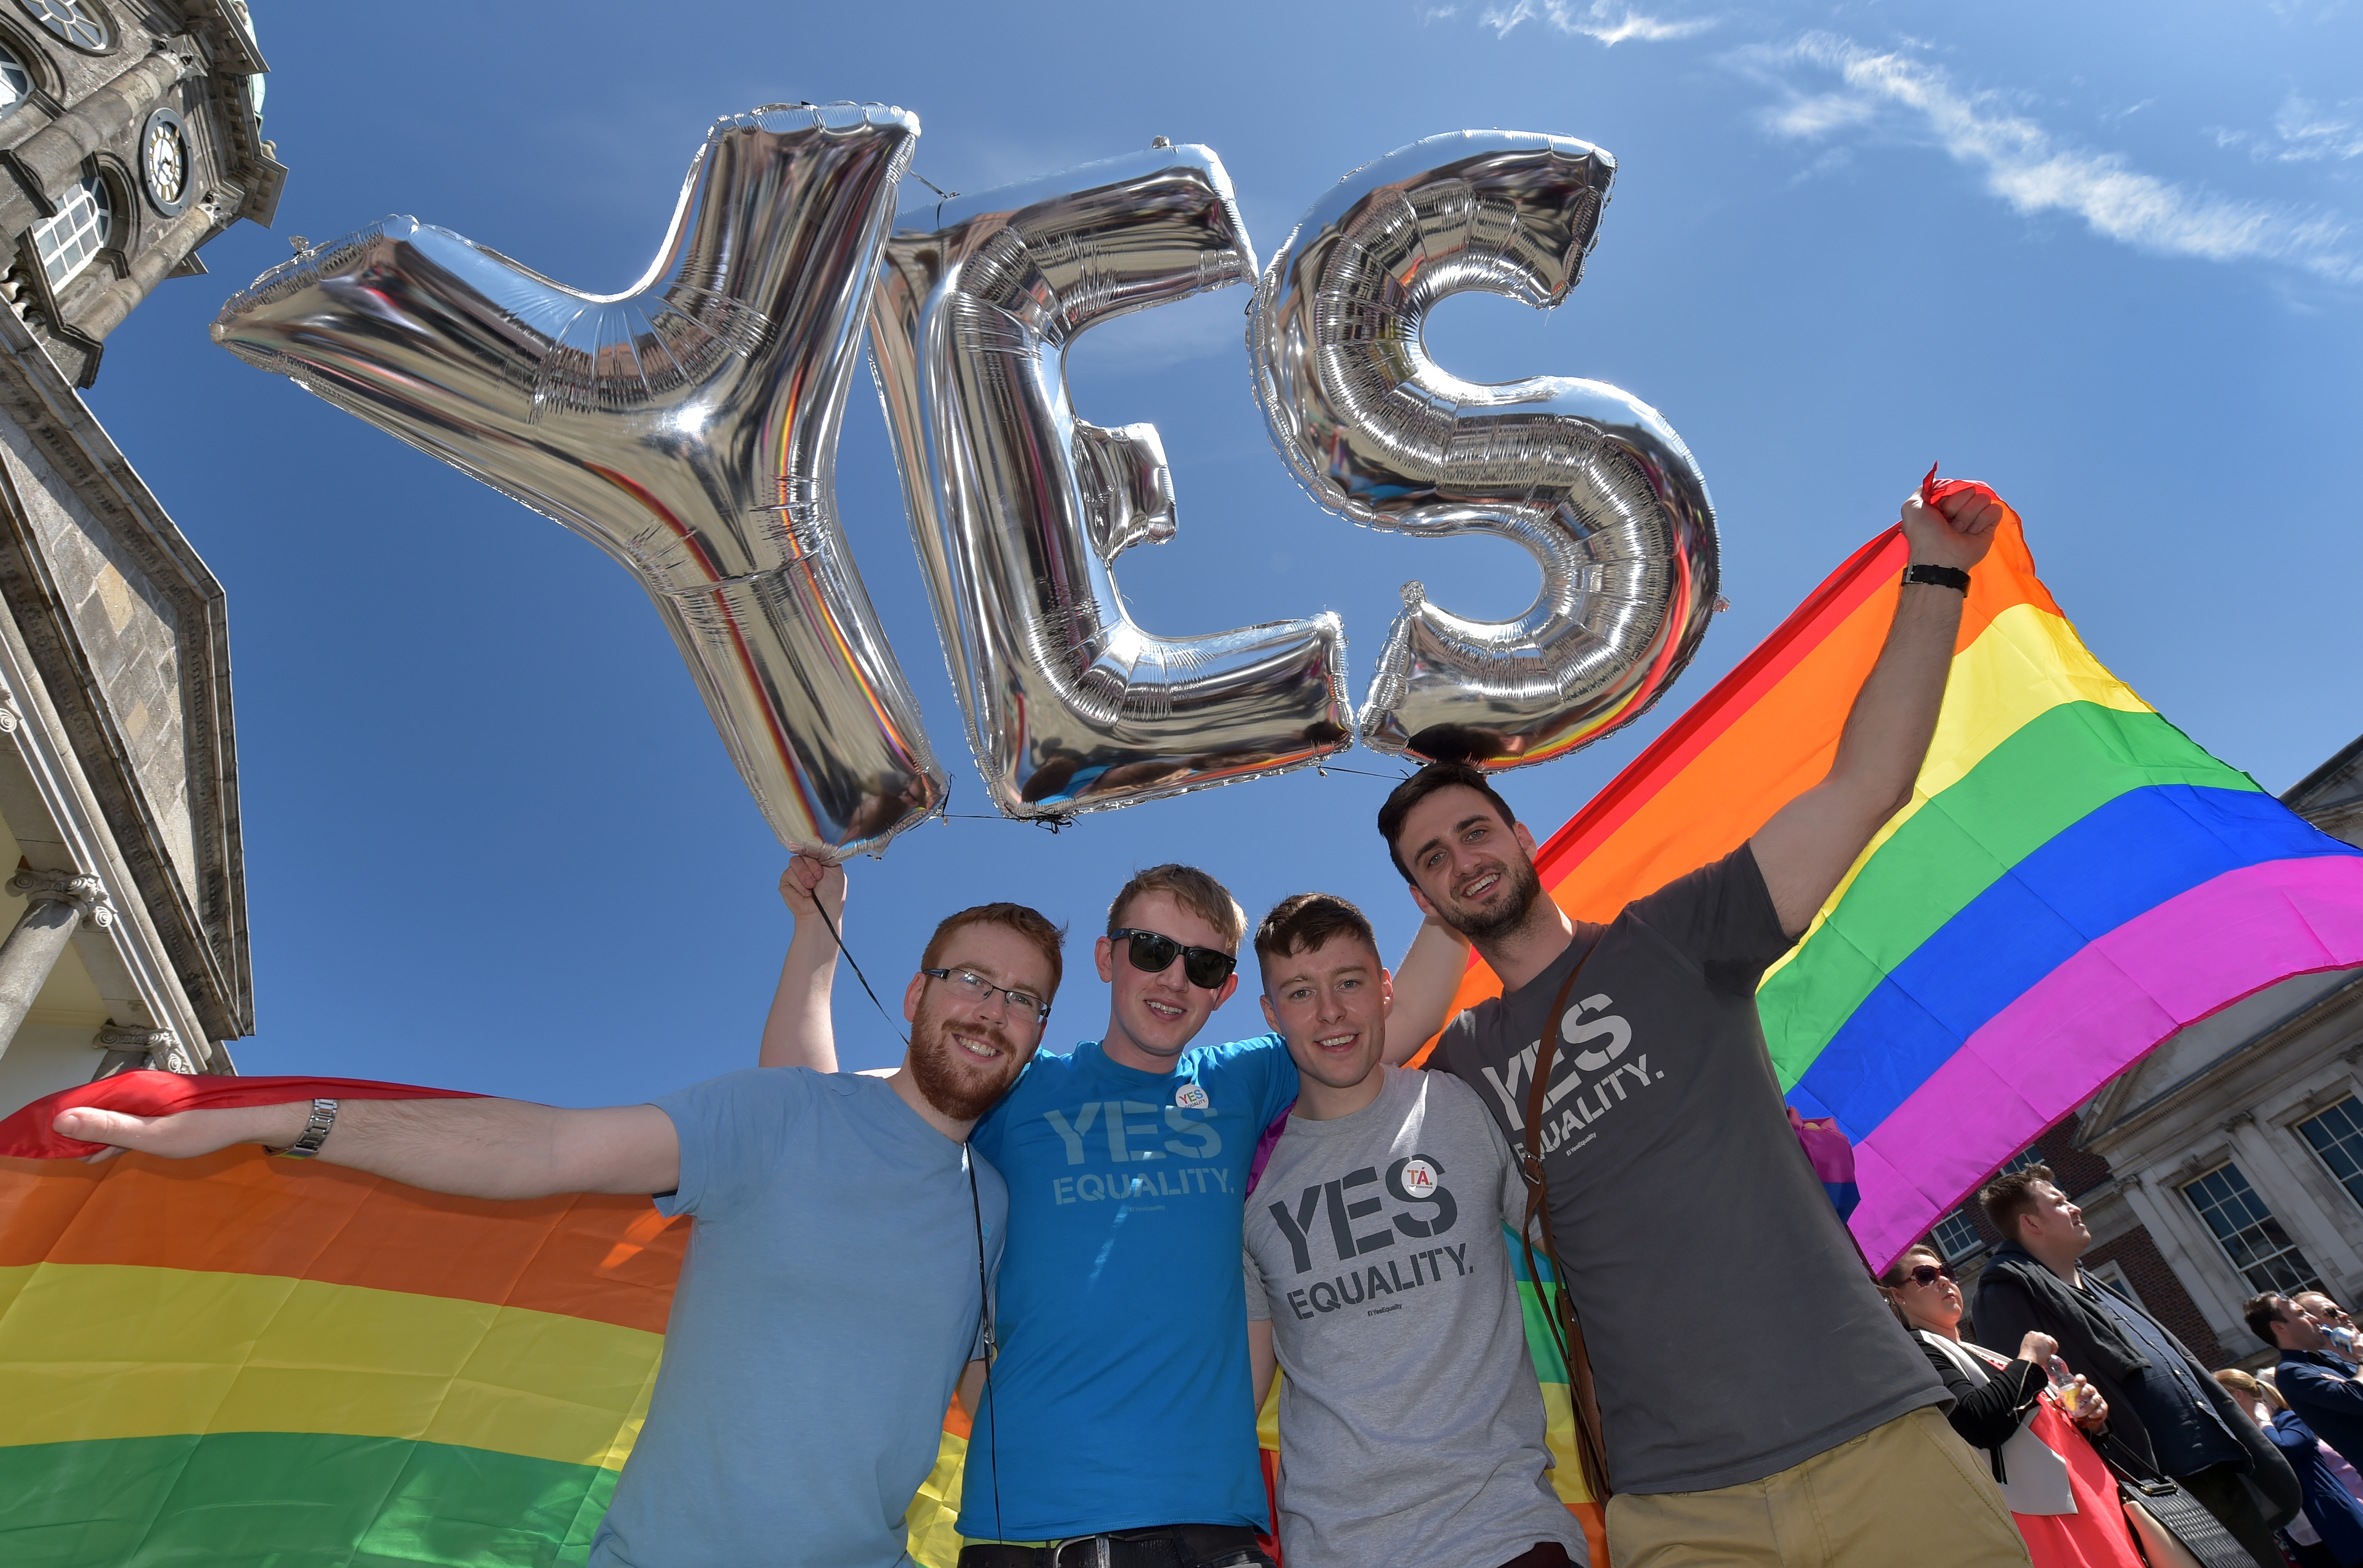 Ireland Votes To Approve Gay Marriage After